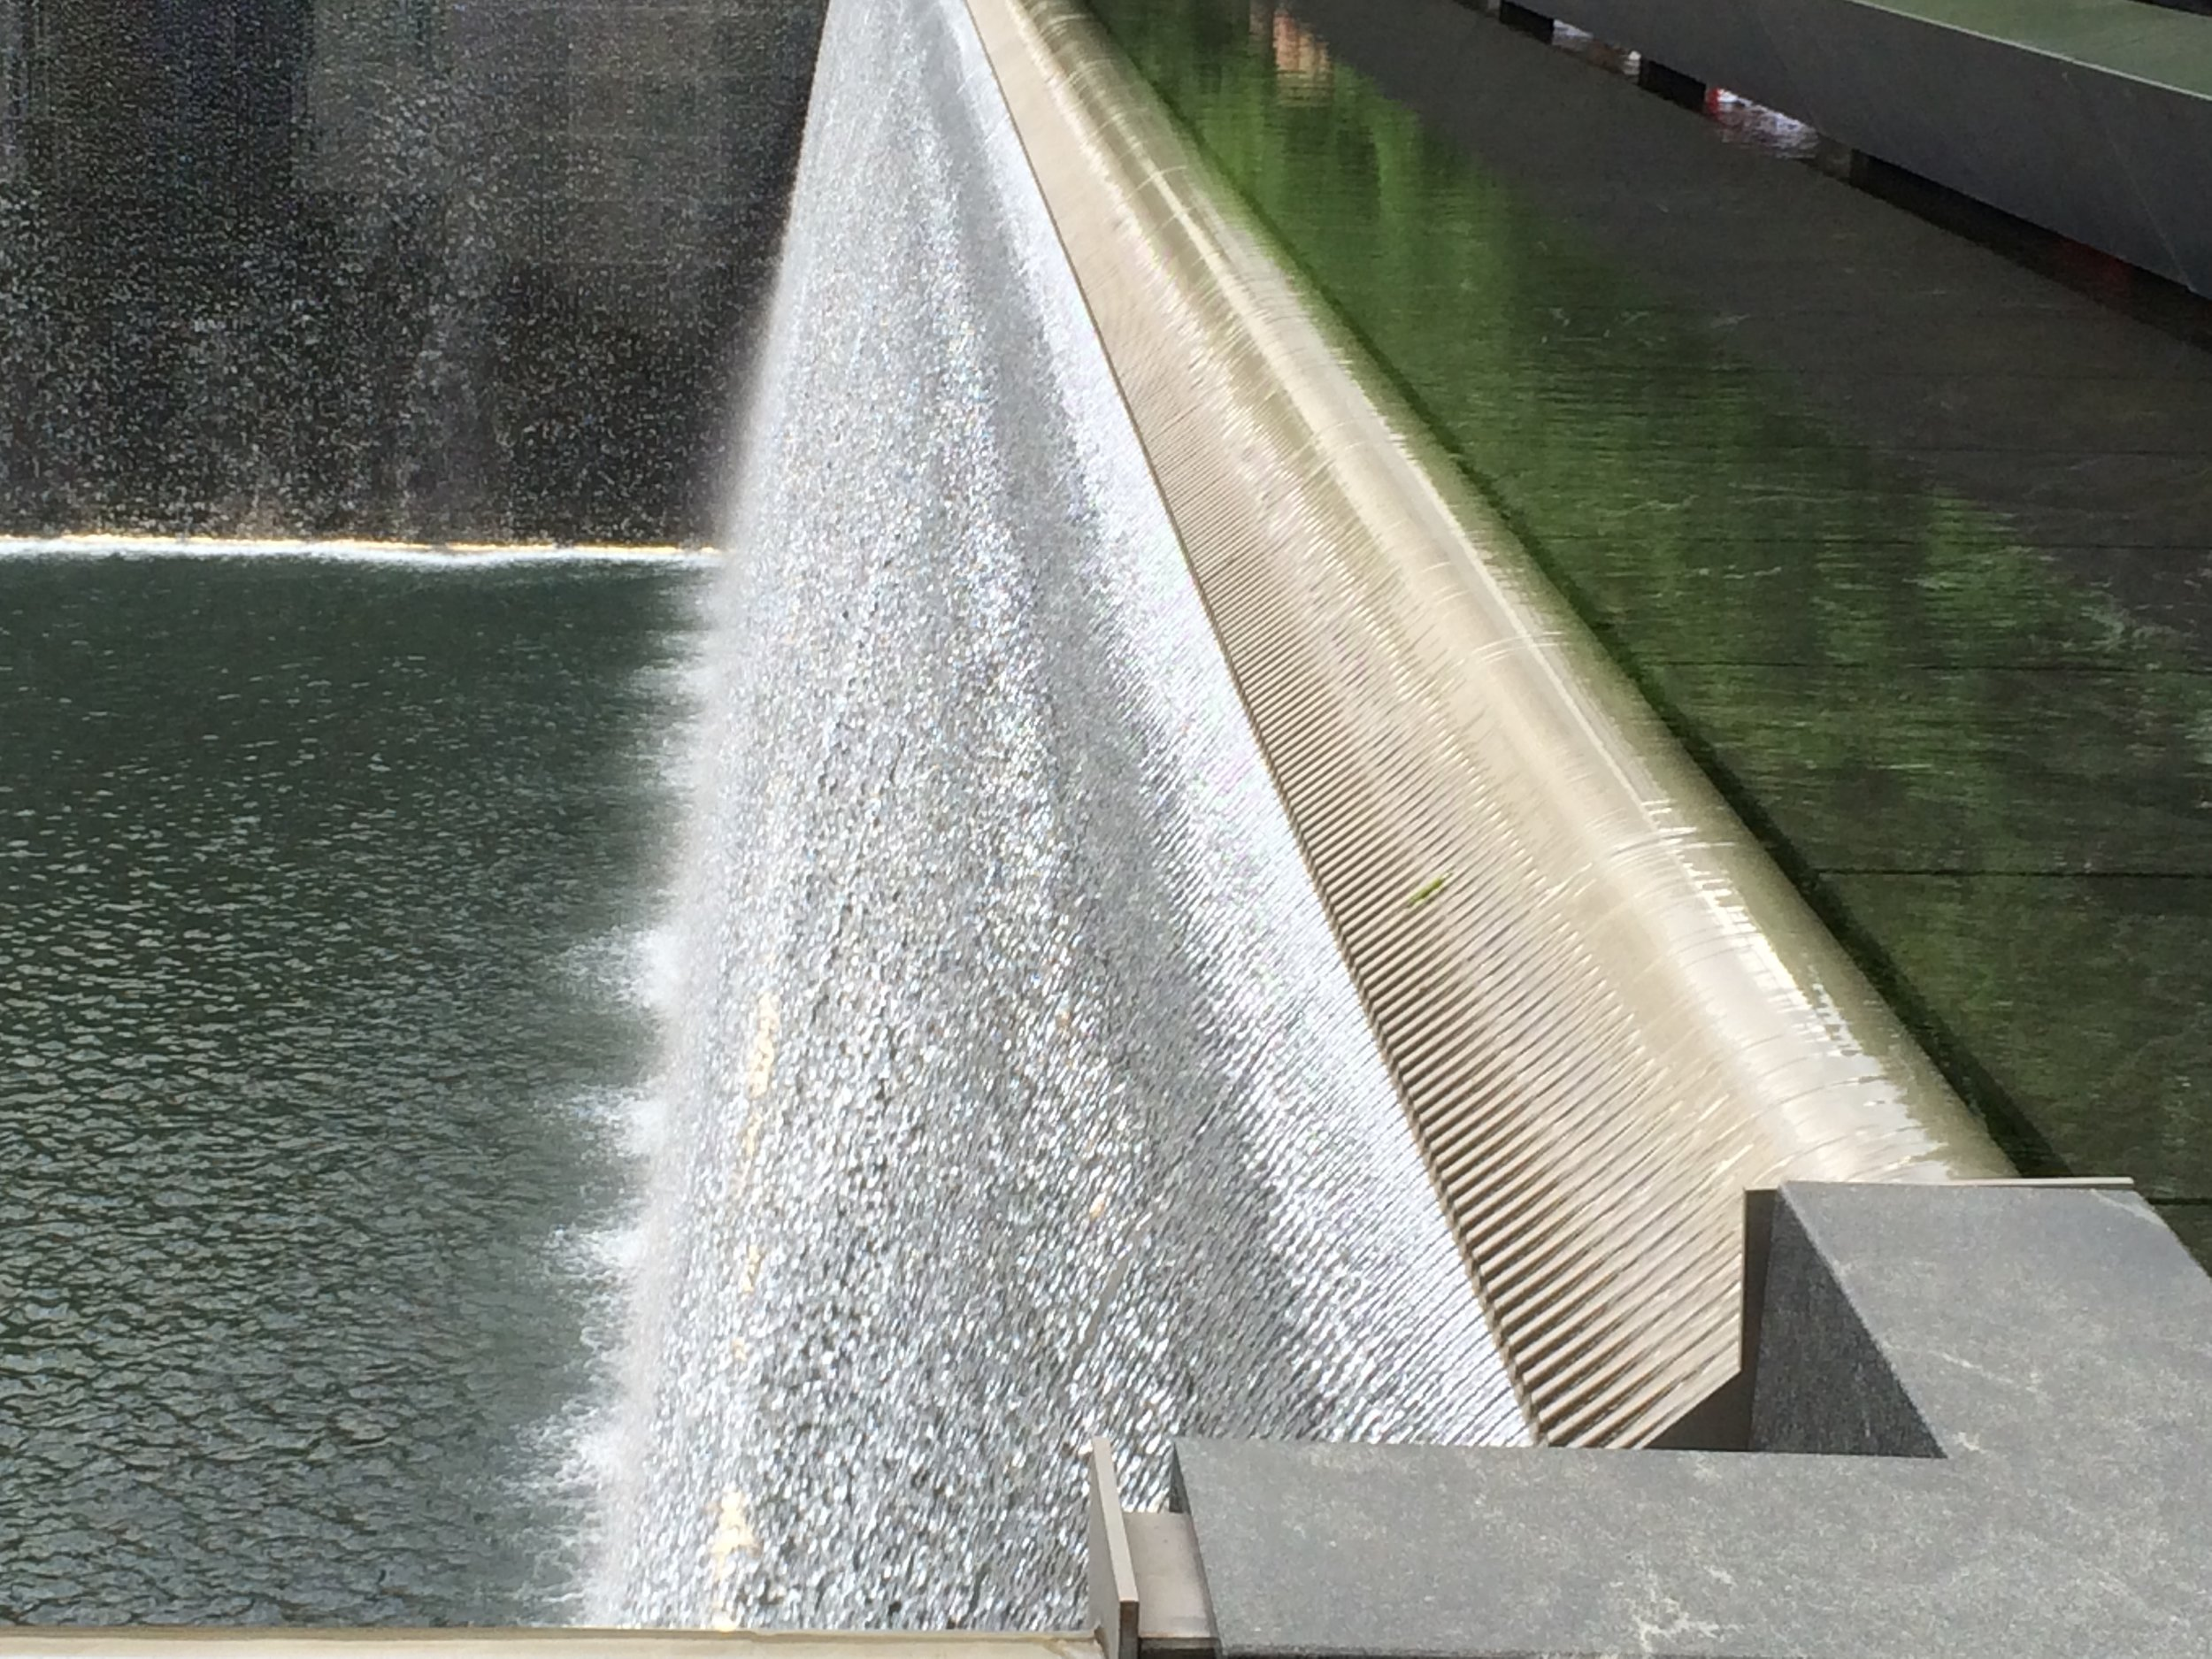 Waterfall_mechanism_of_the_South_Pool_of_the_World_Trade_Center.JPG